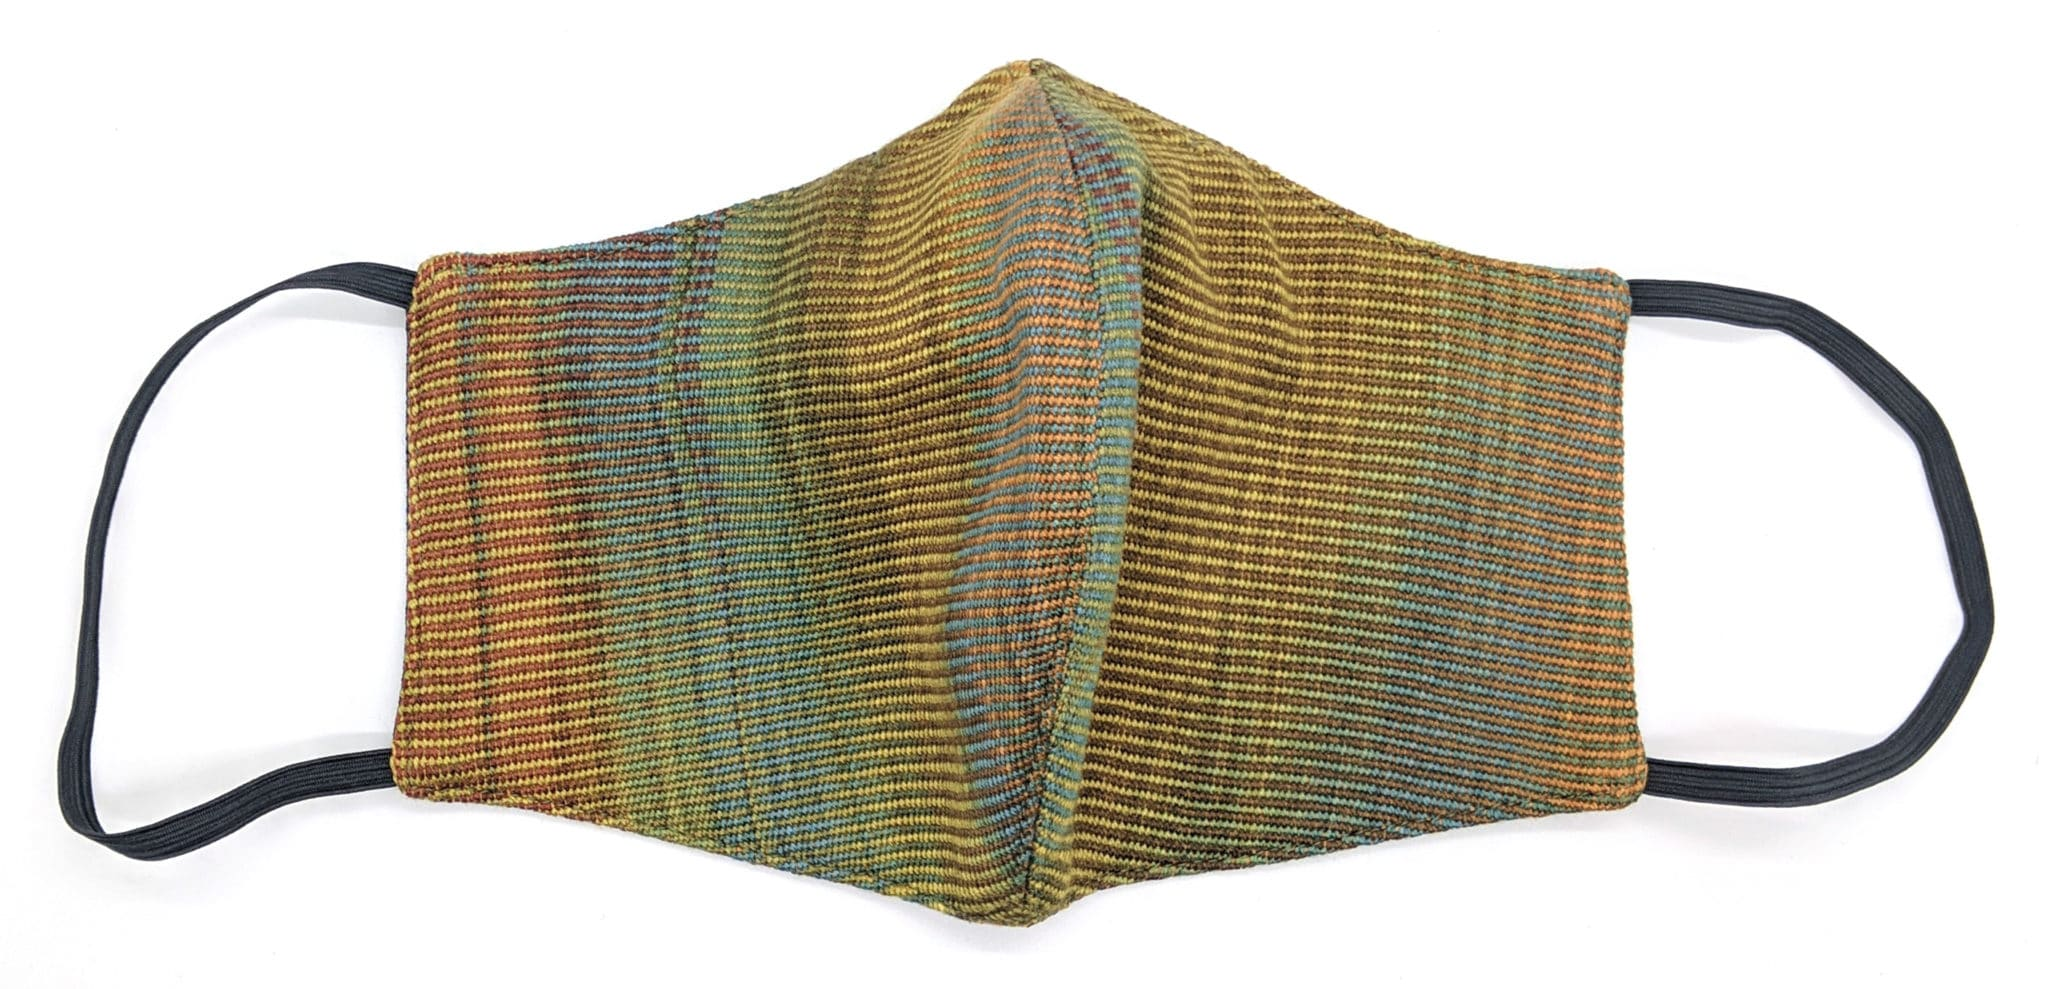 Handwoven Lightweight Bamboo Face Mask with Metal at Bridge of Nose - Autumn Rainbow